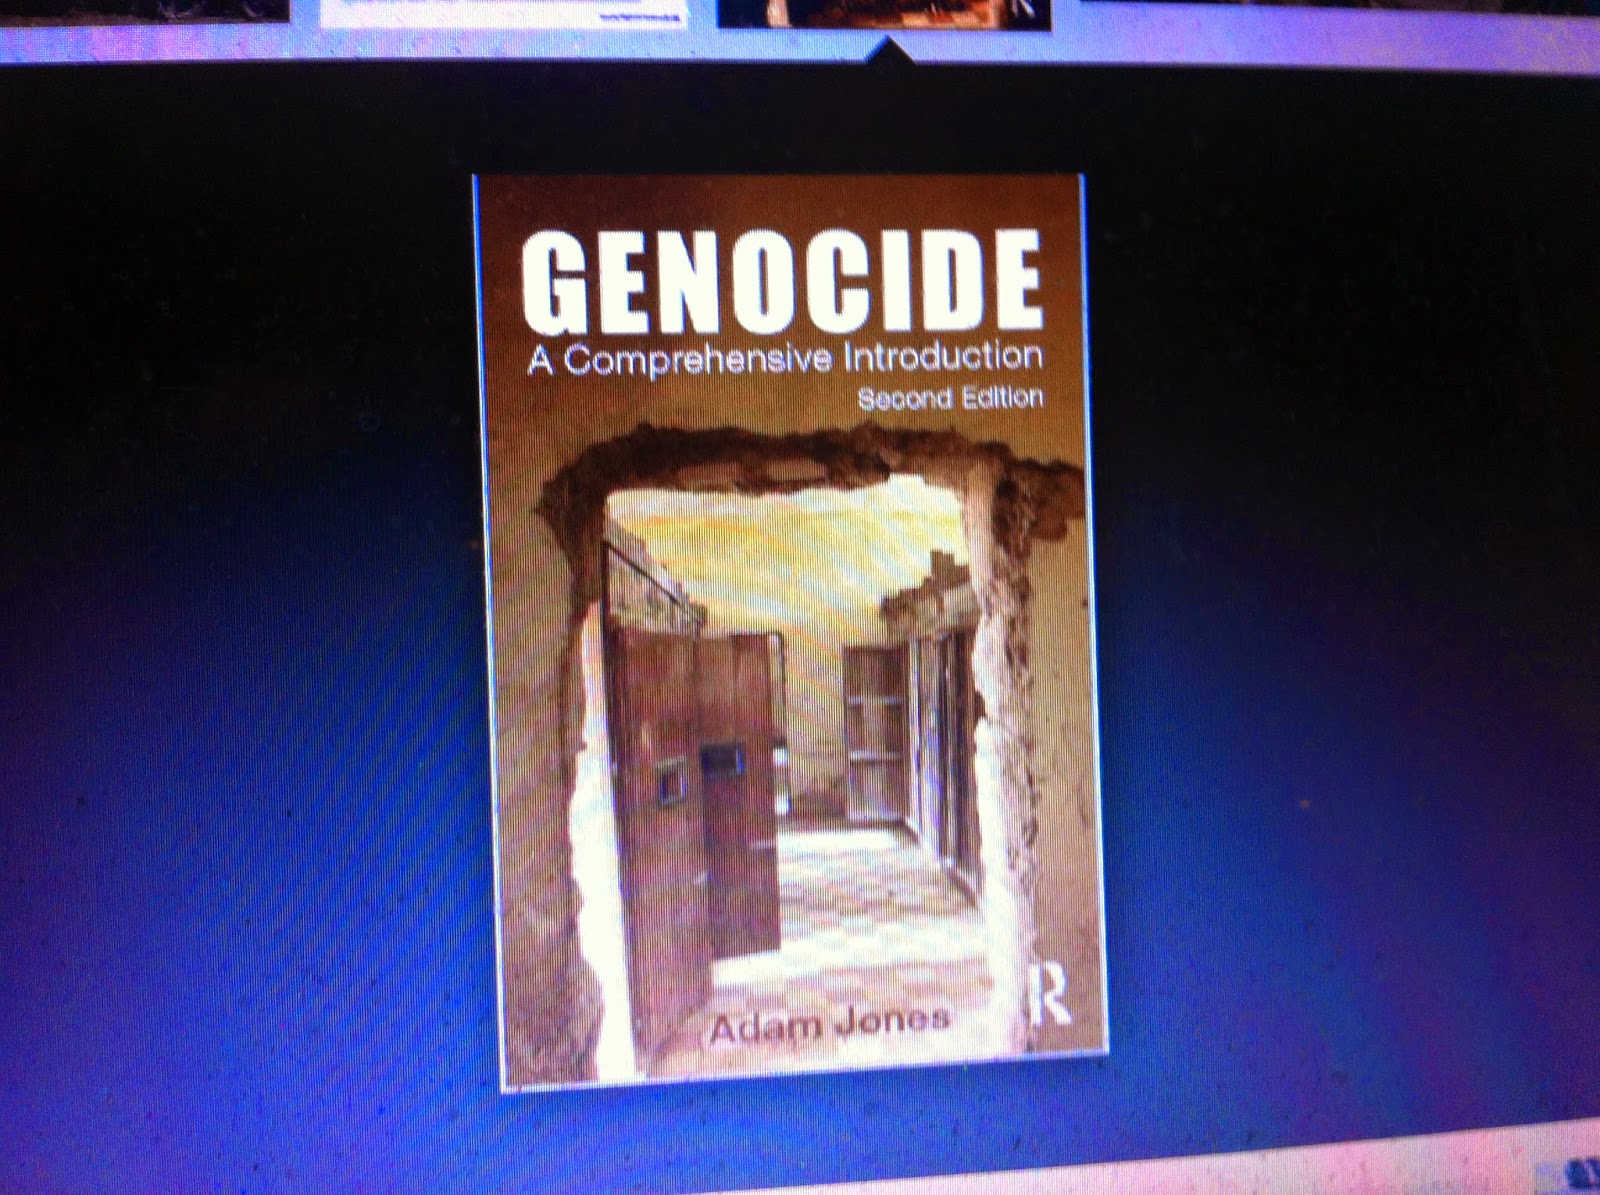 argentina genocide Dirty war: dirty war, infamous campaign waged from 1976 to 1983 by argentina's military dictatorship against suspected left-wing political opponents in which an estimated 10,000 to 30,000 citizens were killed, many of whom were 'disappeared.